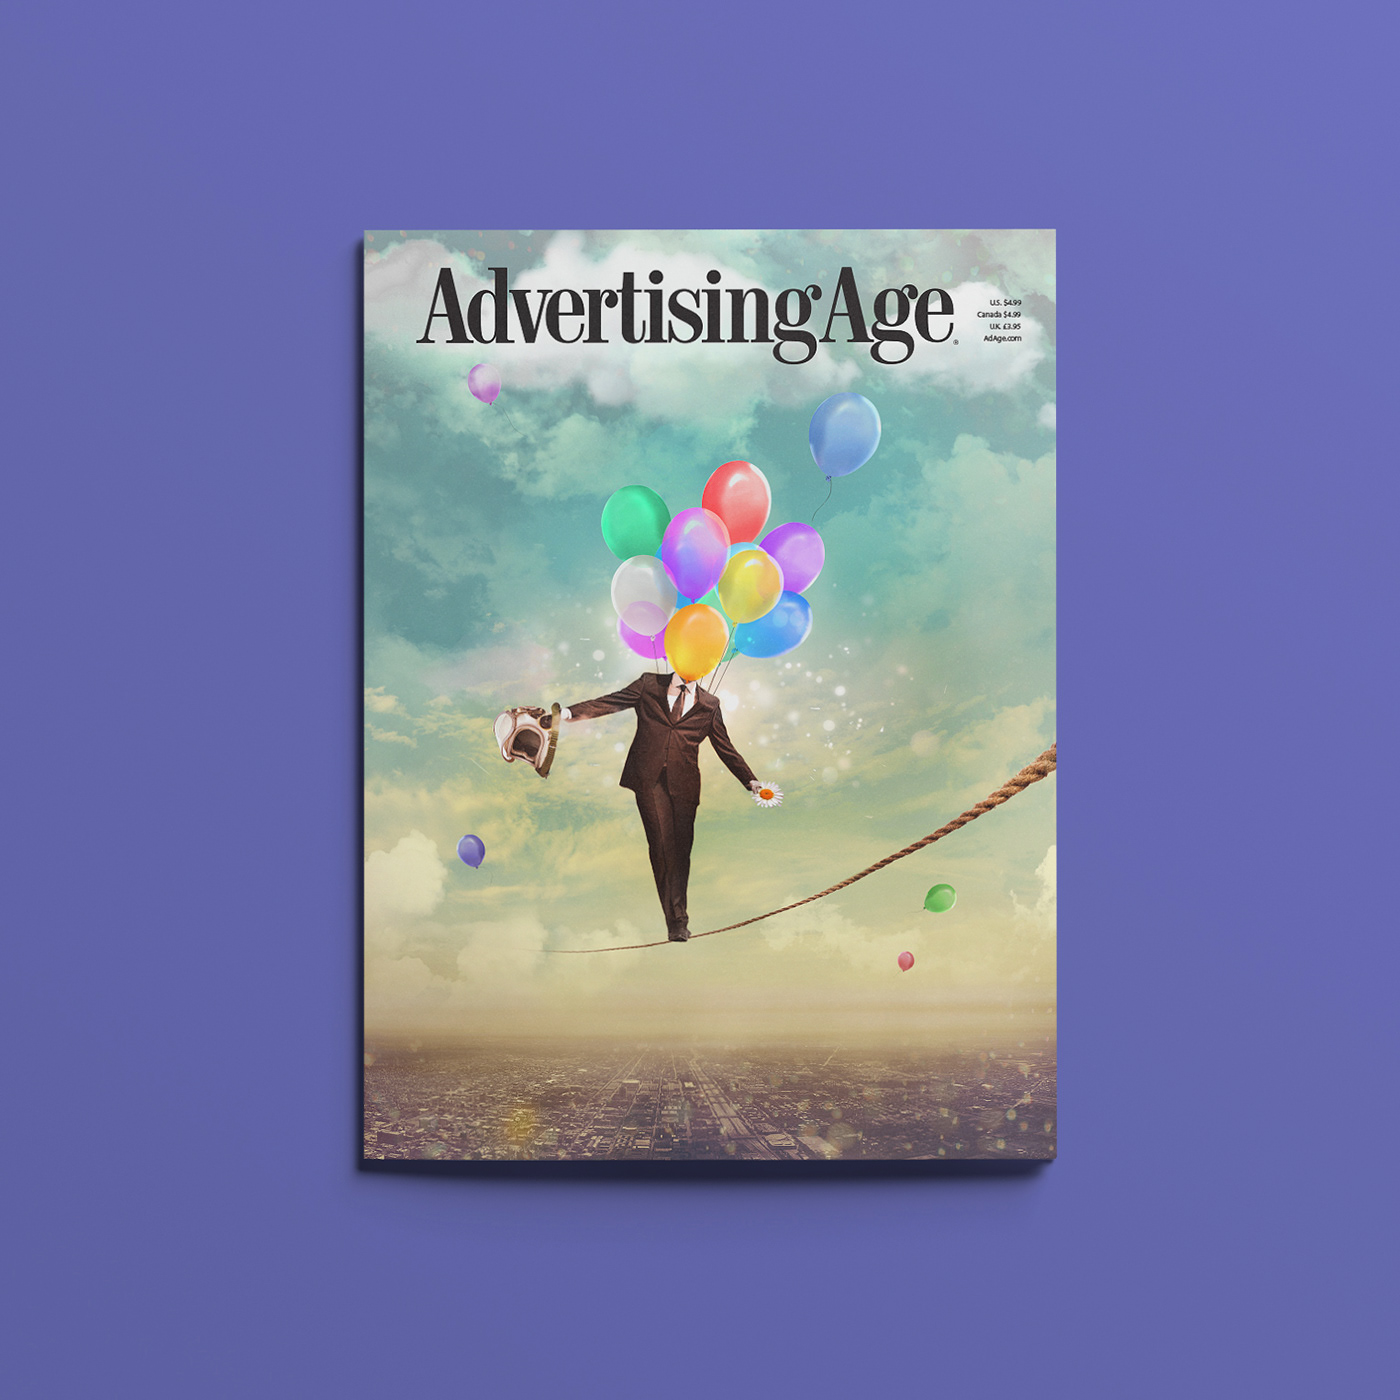 Advertising Age adage Cannes cover design Creativity cannes issue risk taking